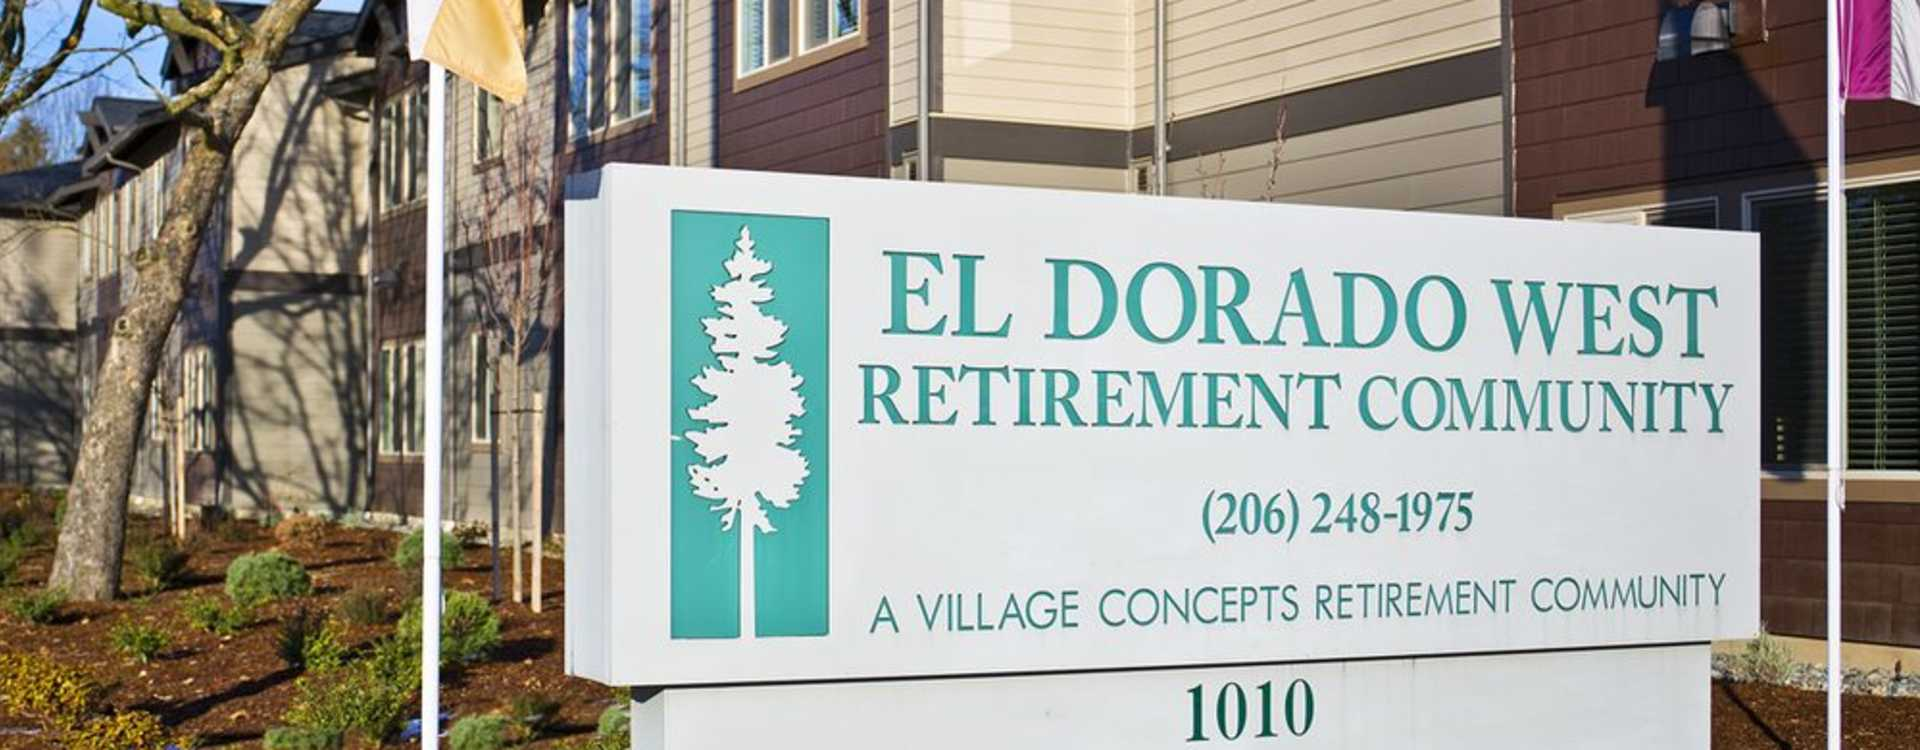 EL DORADO WEST RETIREMENT COMMUNITY